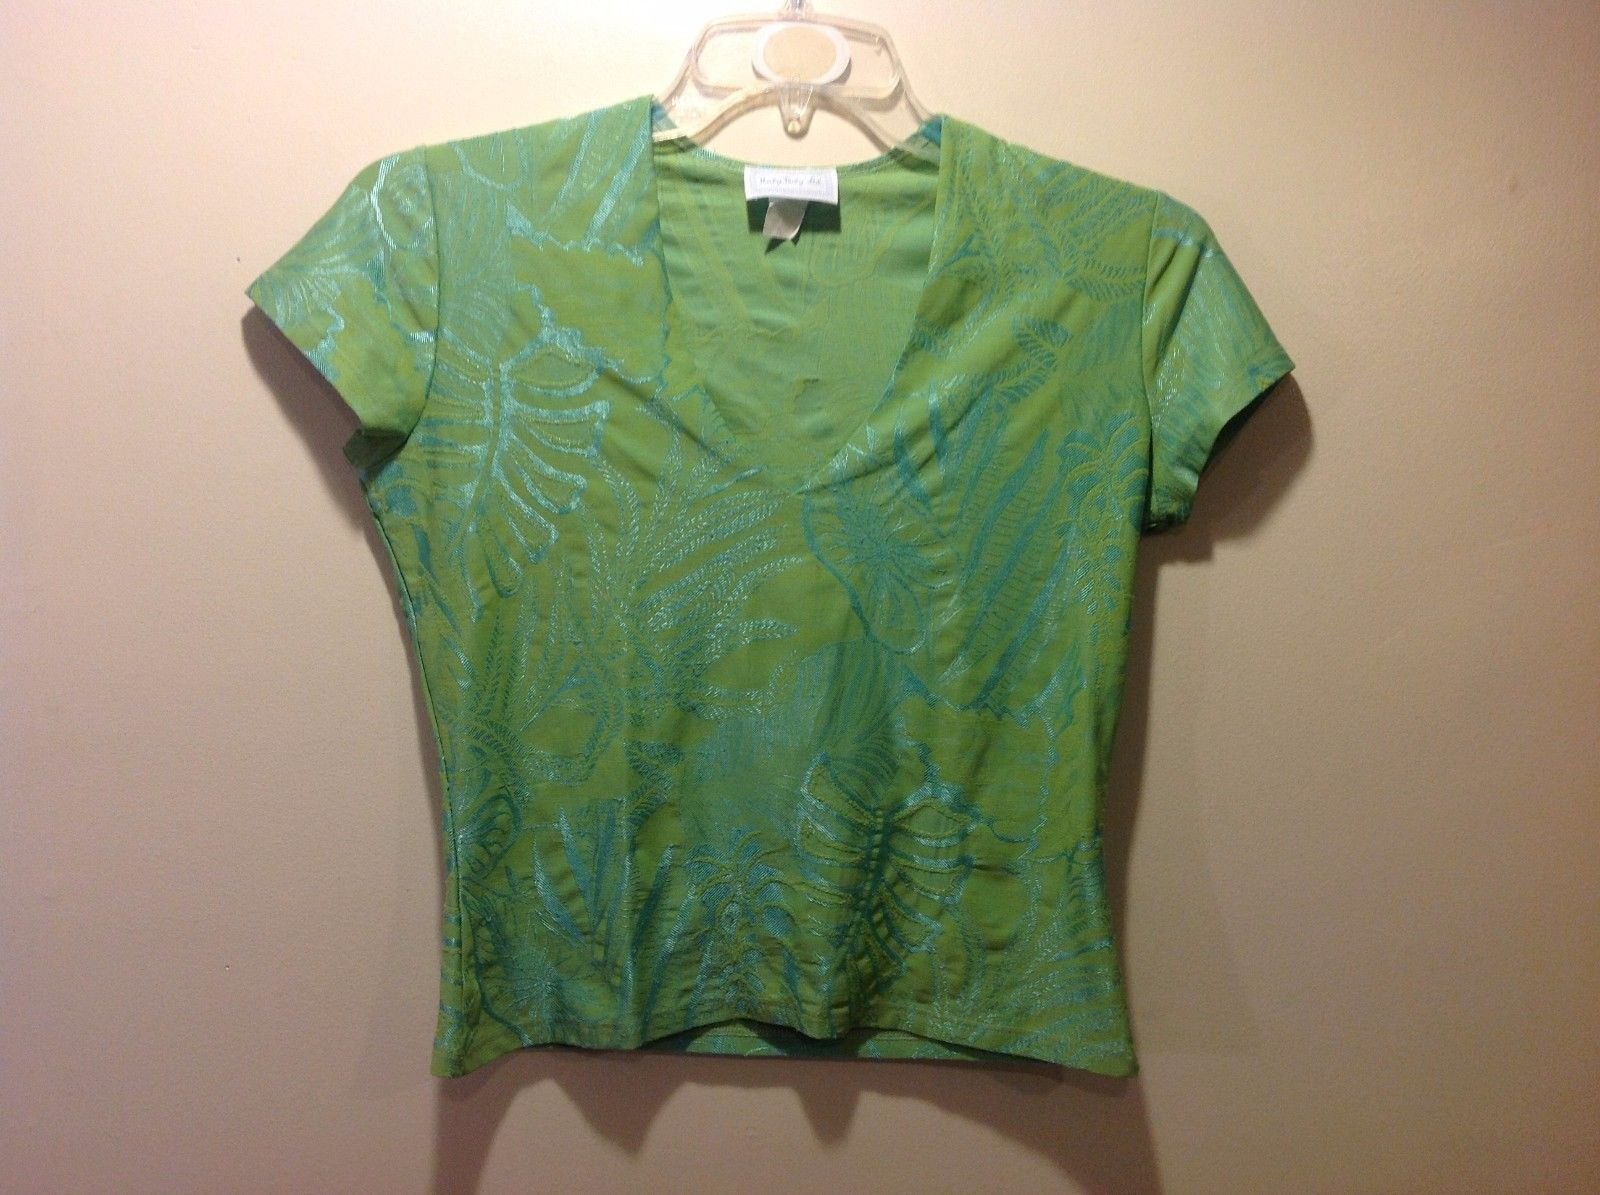 Great Used Condition Hanky Panky Ltd. Medium Live Green V-Neck Tee Tropical